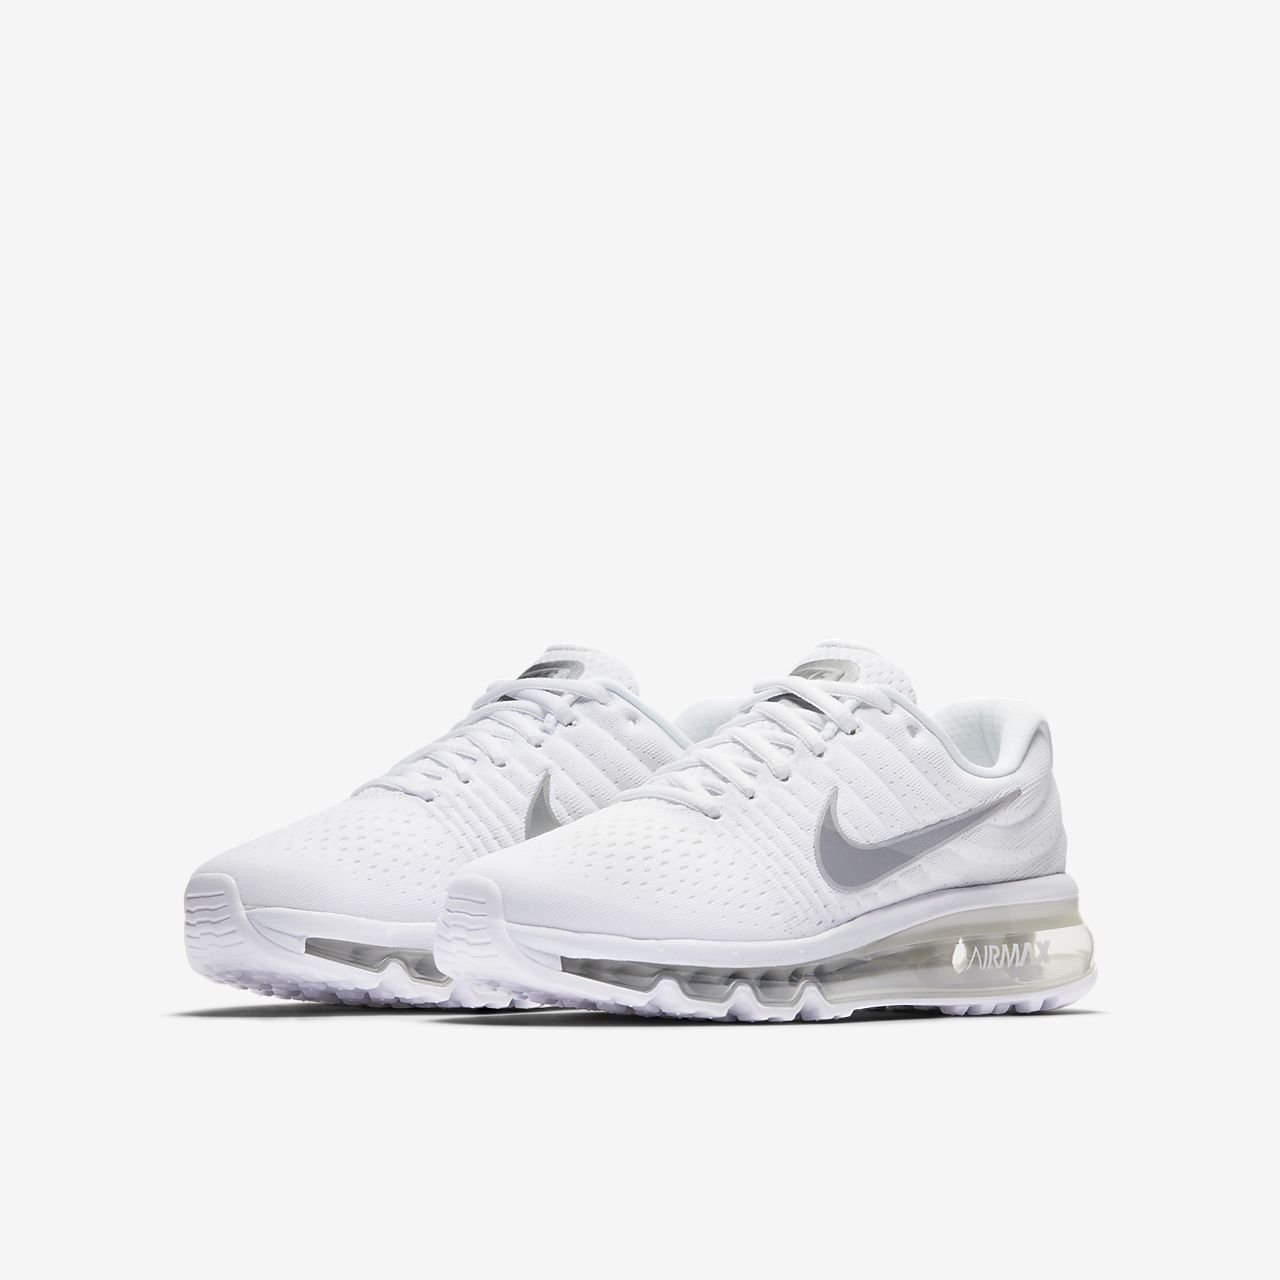 0e32c232635c3 Nike Air Max 2017 Older Kids  Shoe. Nike.com AU